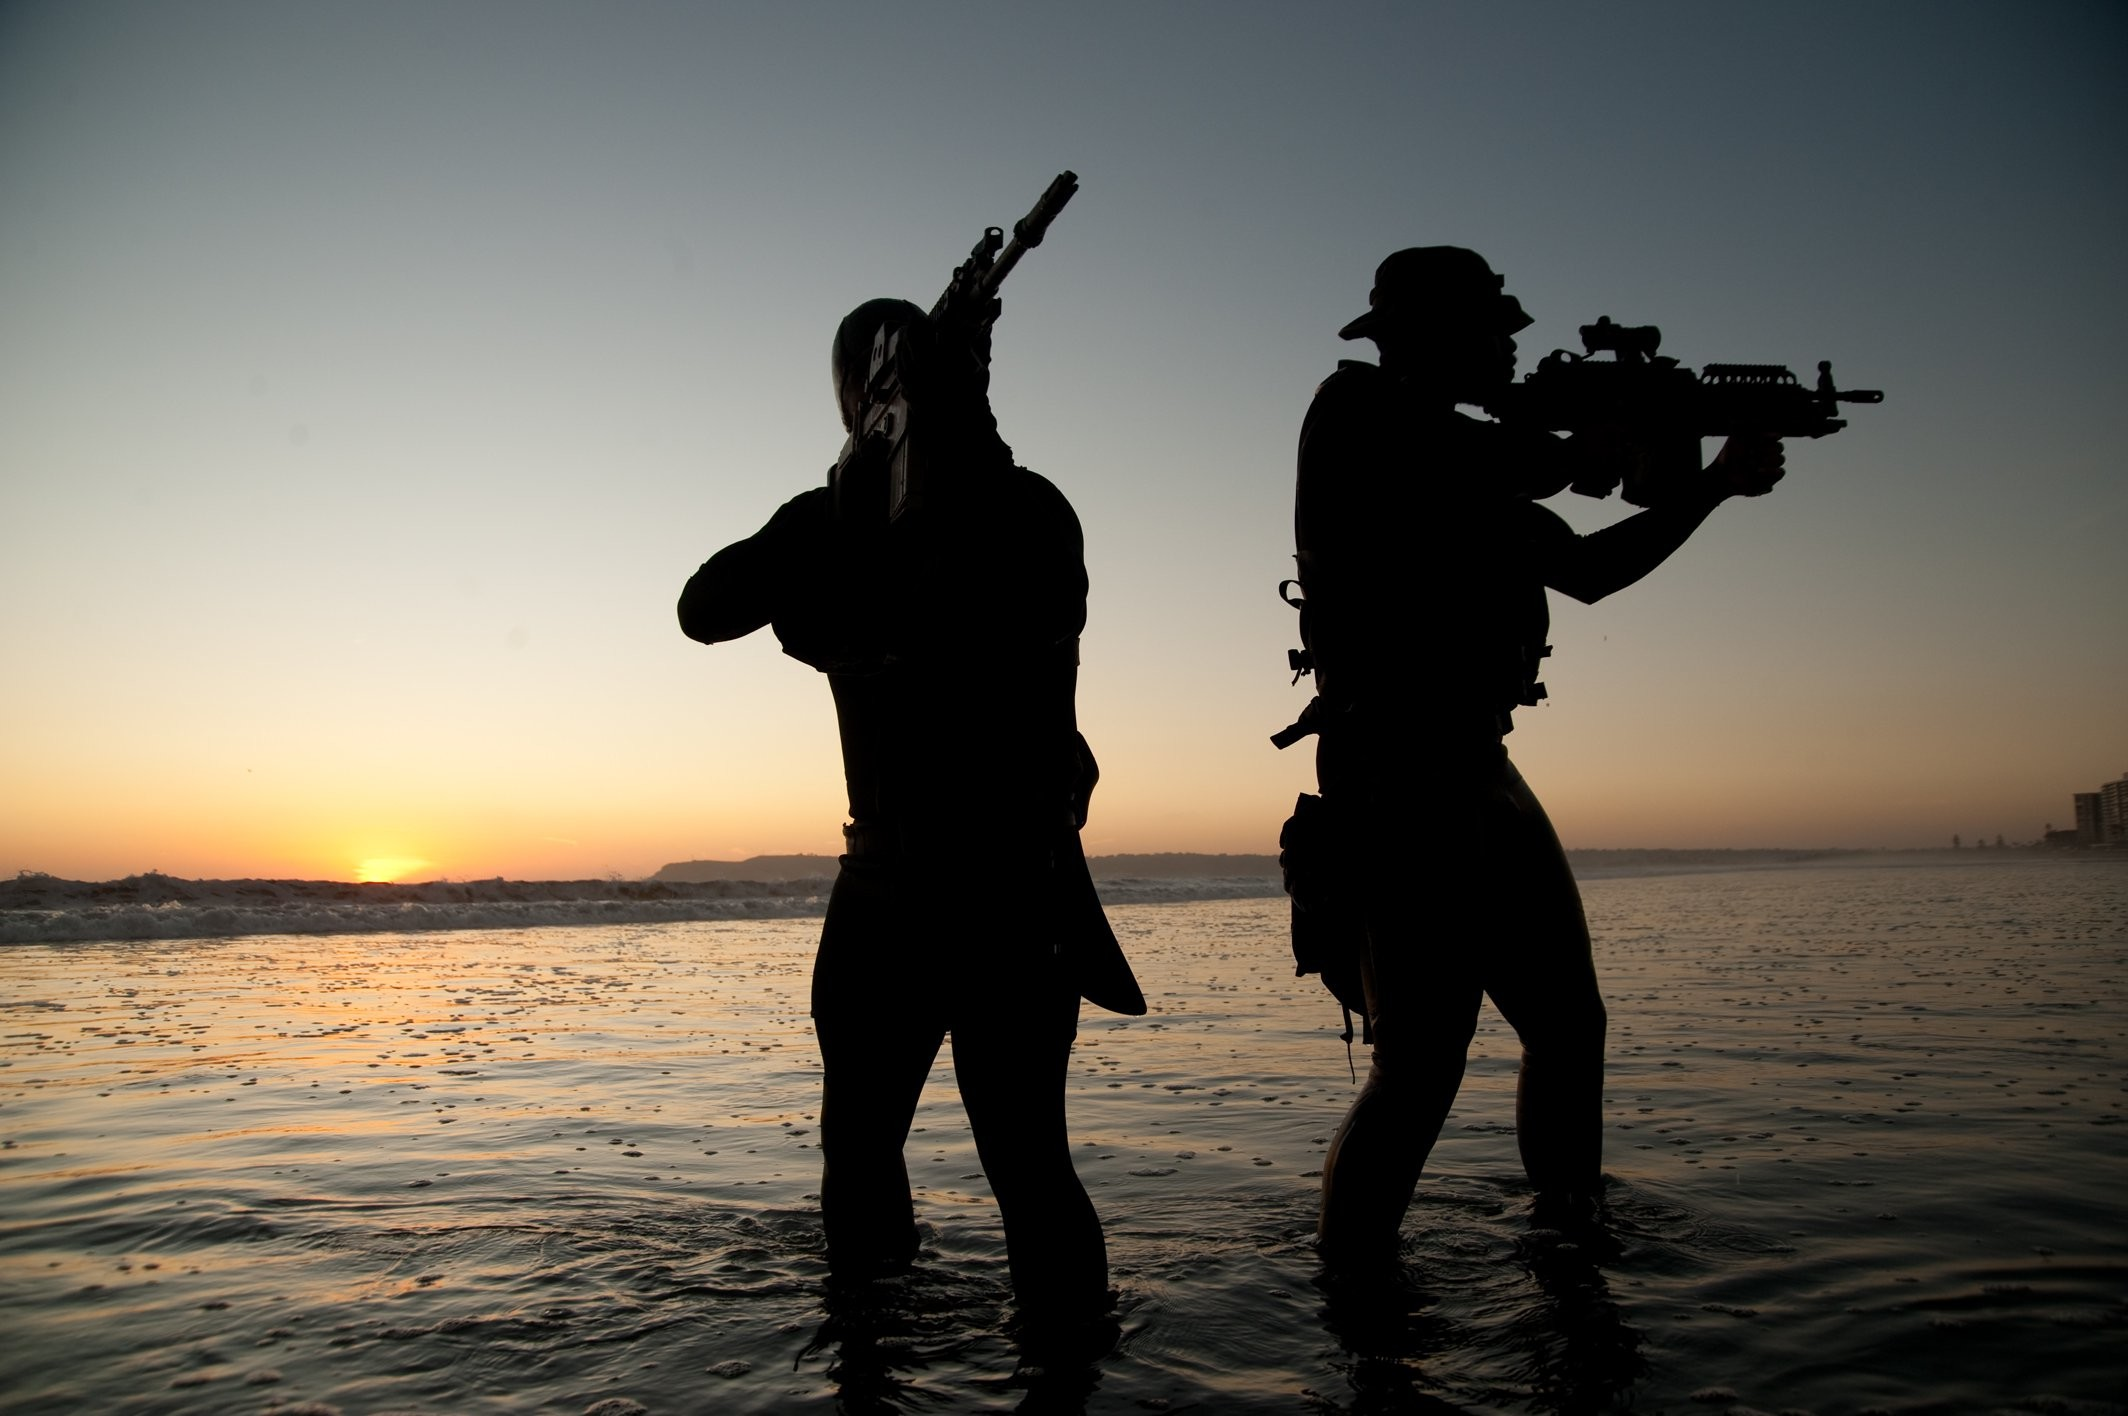 Download Us Navy Seals With F wallpapers to your cell phone flag 1728×1152  Navy Seal Wallpaper (29 Wallpapers)   Adorable Wallpapers   Desktop    Pinterest …